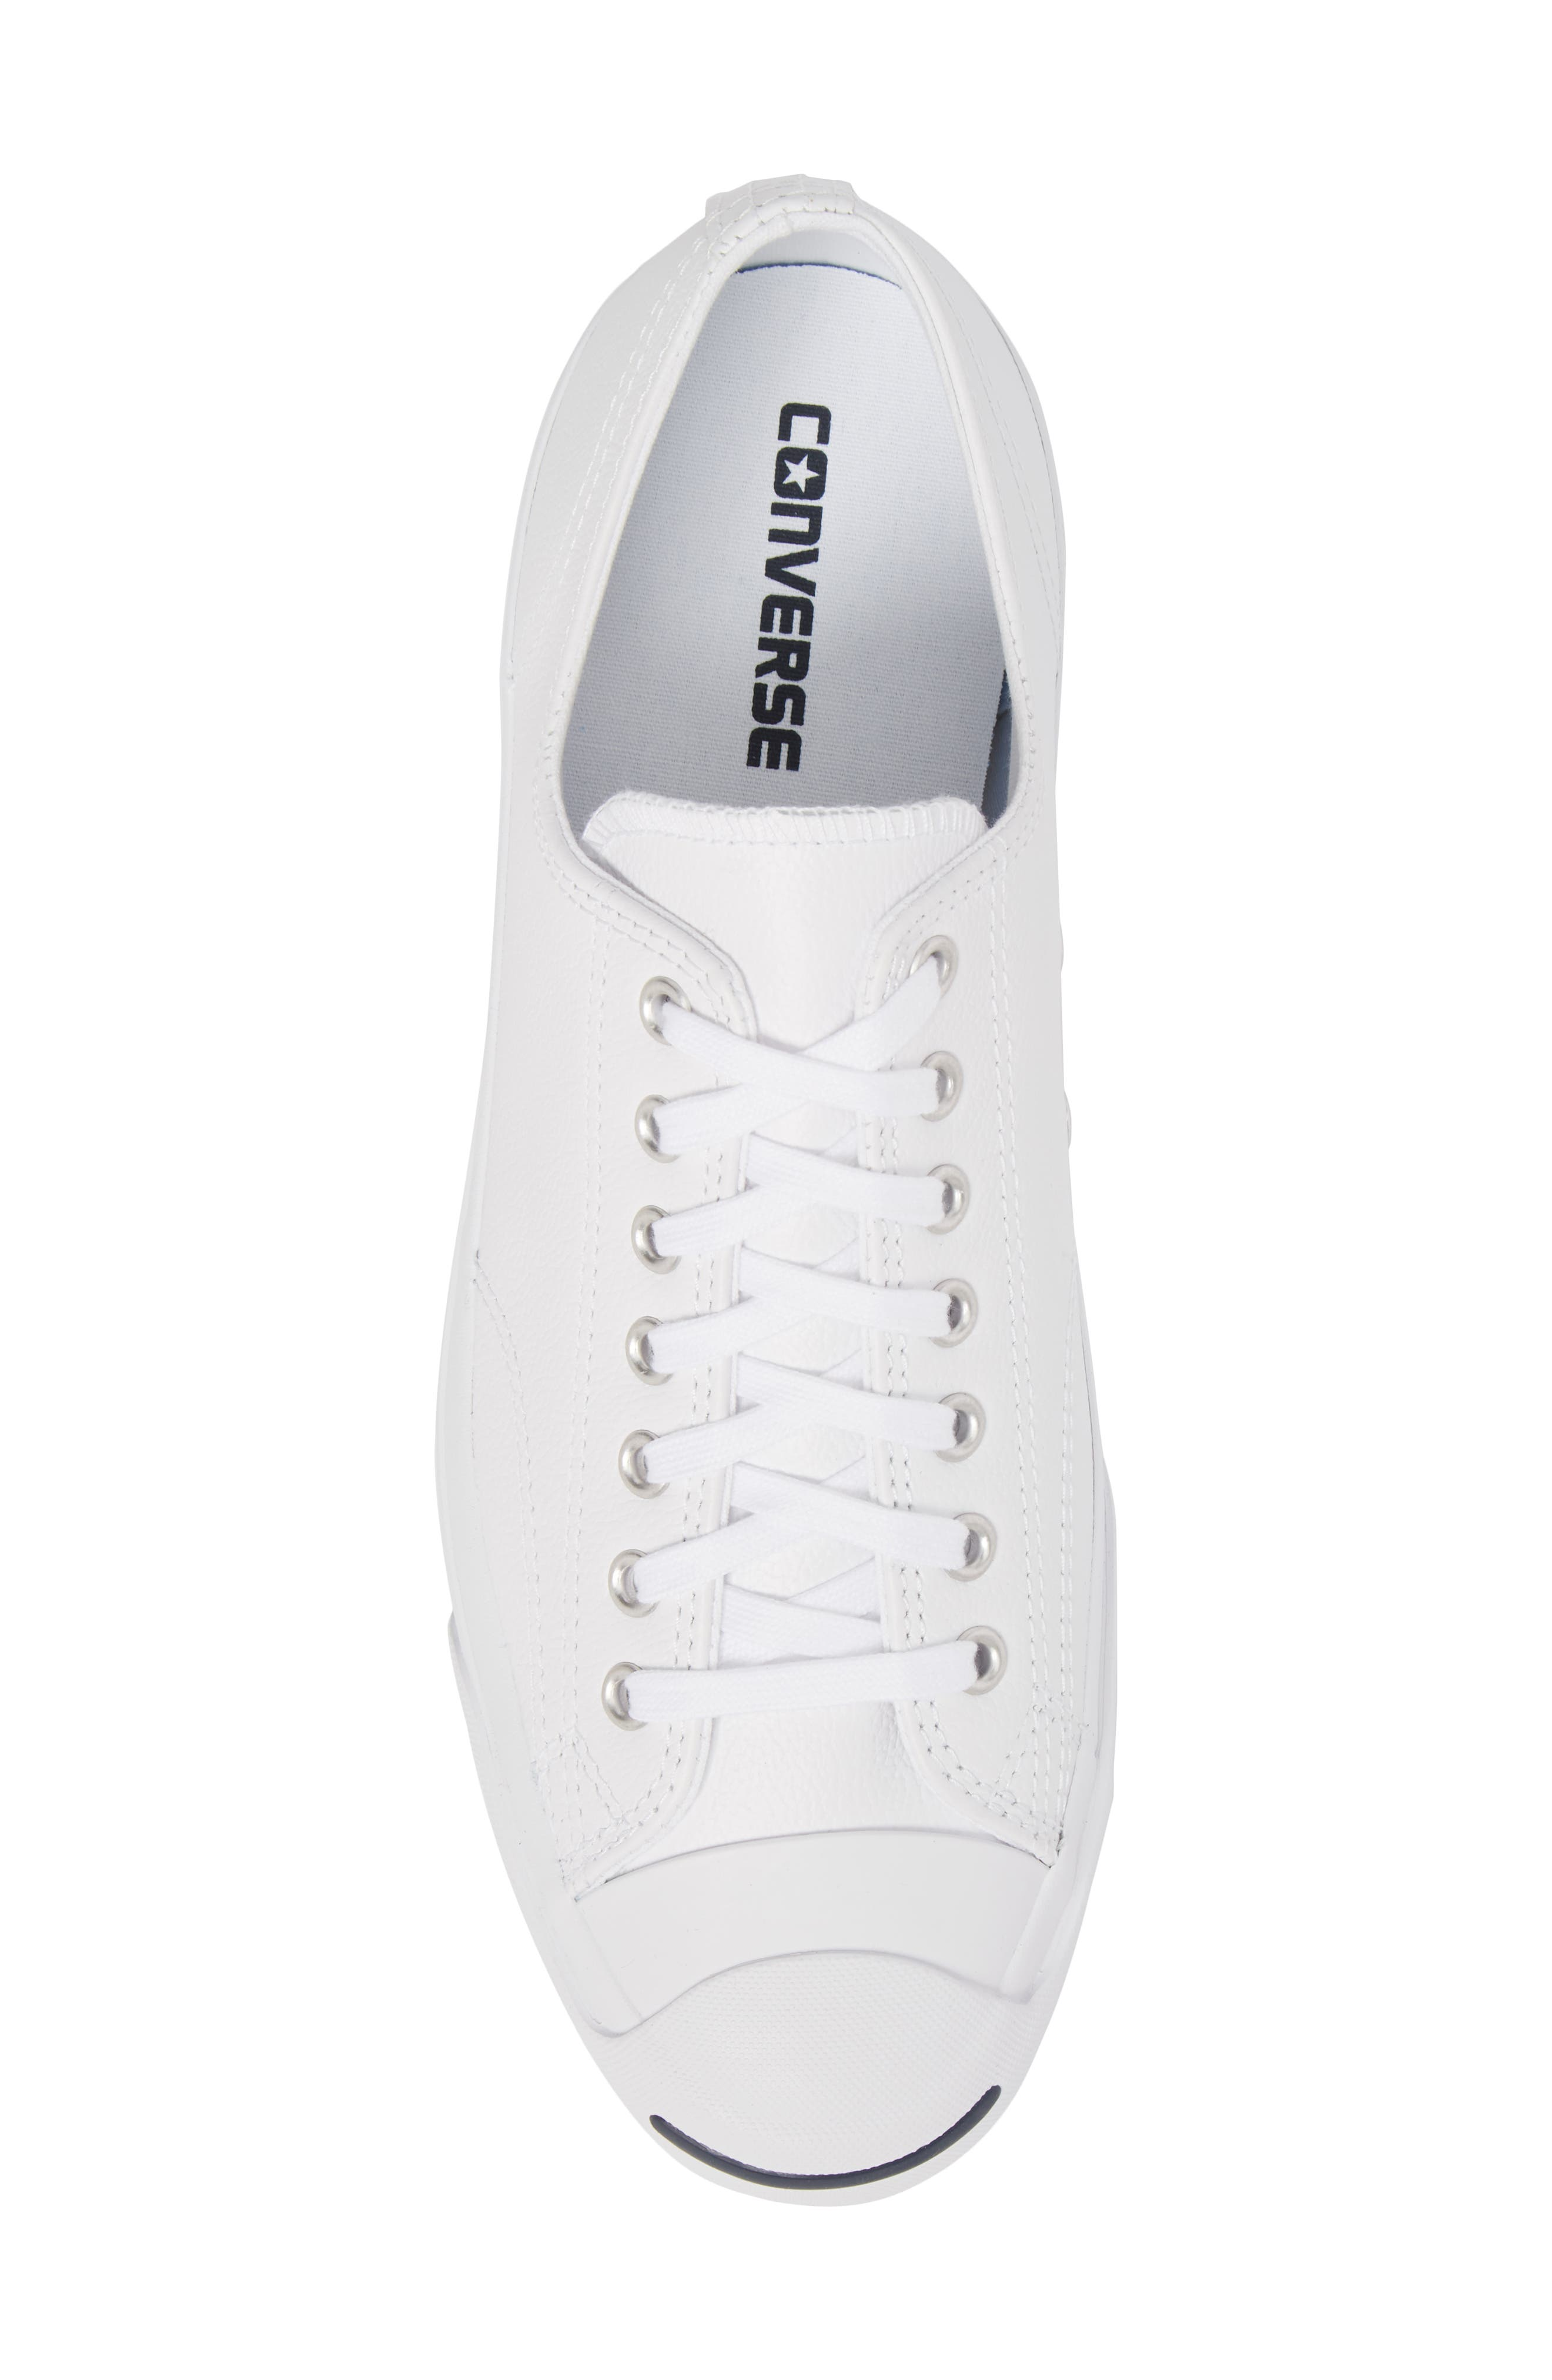 'Jack Purcell' Leather Sneaker,                             Alternate thumbnail 5, color,                             White/ Navy